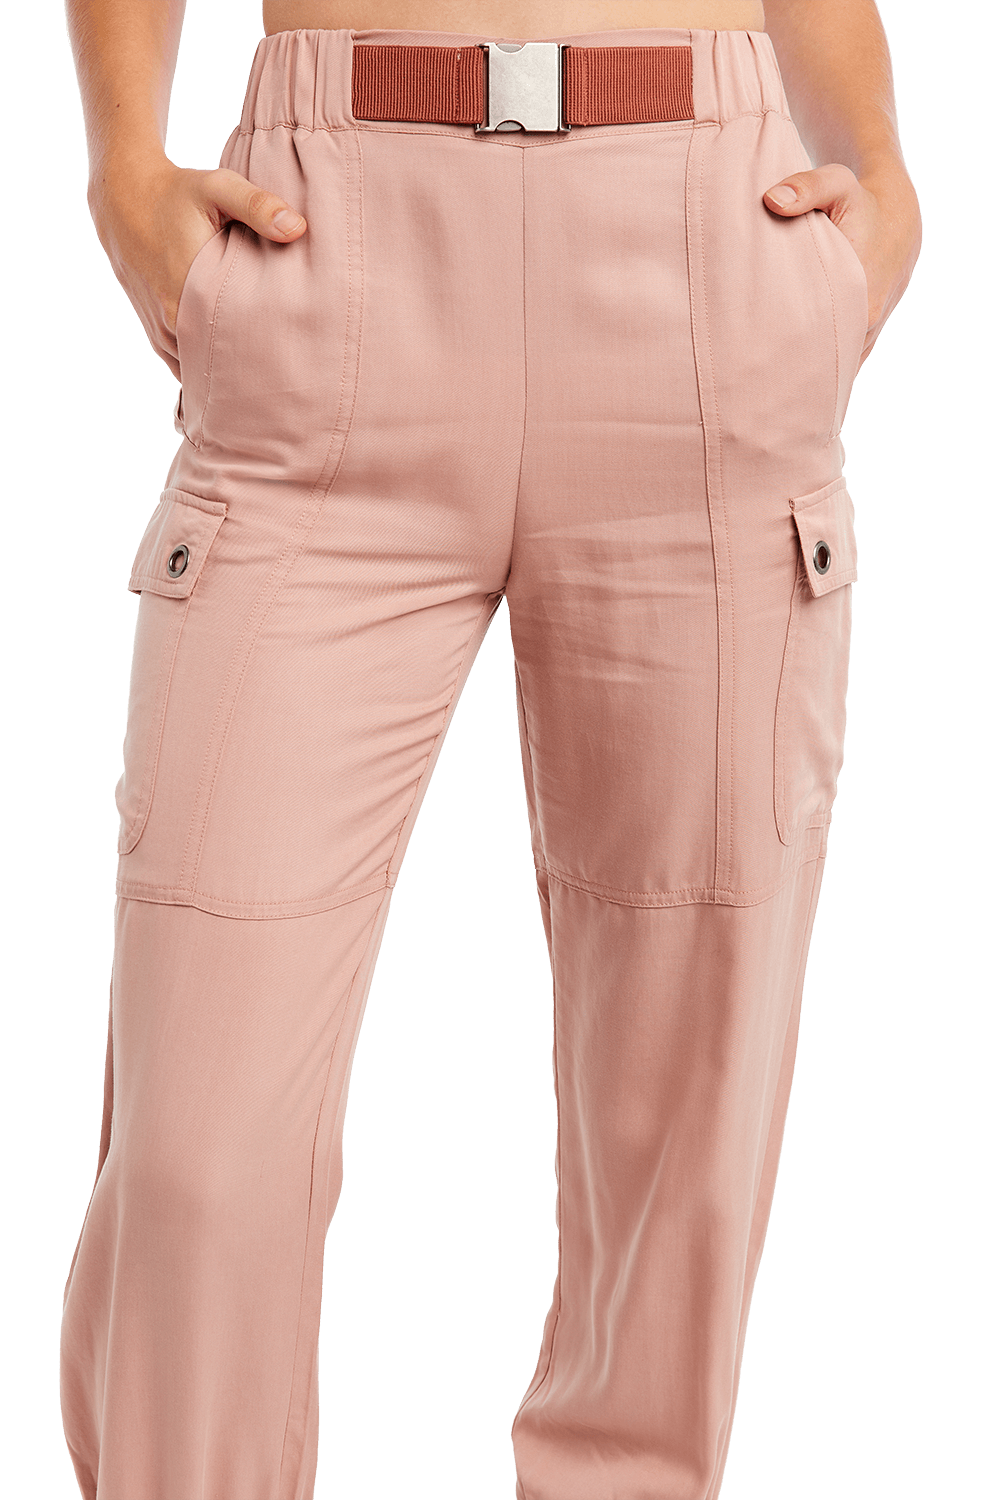 BUCKLE CARGO PANT in colour BRIDAL ROSE